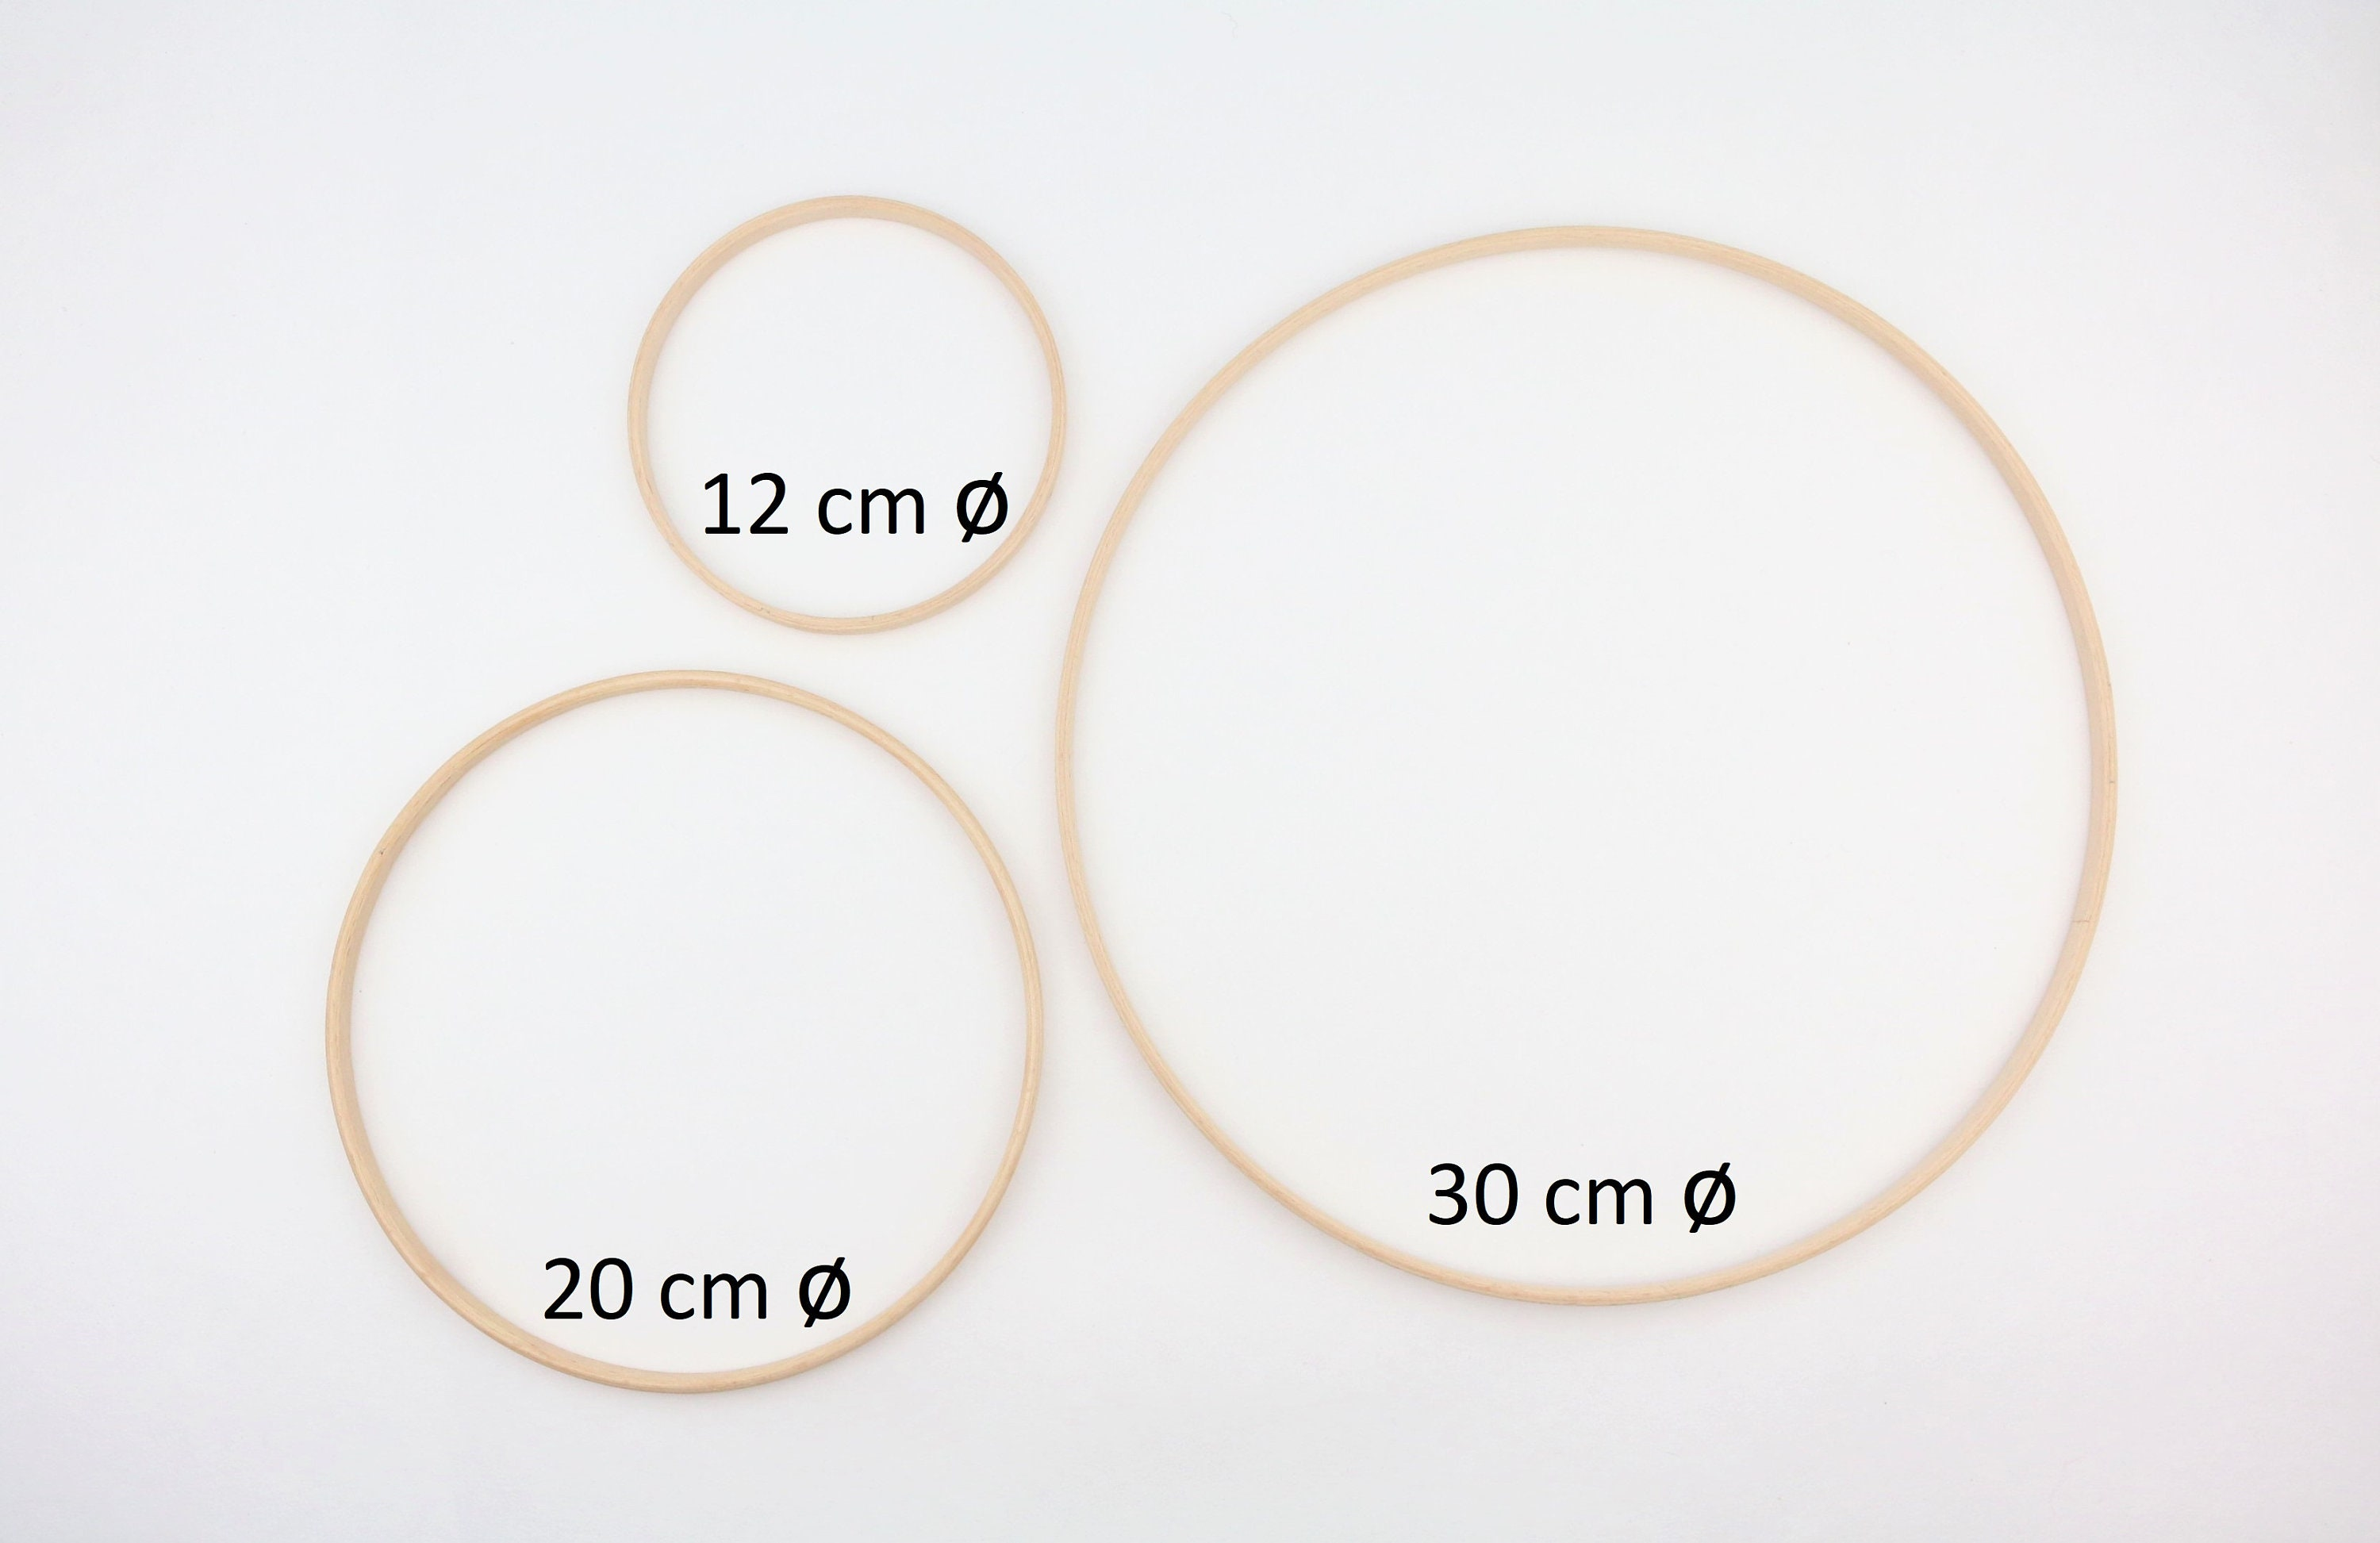 Ring Wooden 30 Cm Diameter Wooden Ring Accessories For